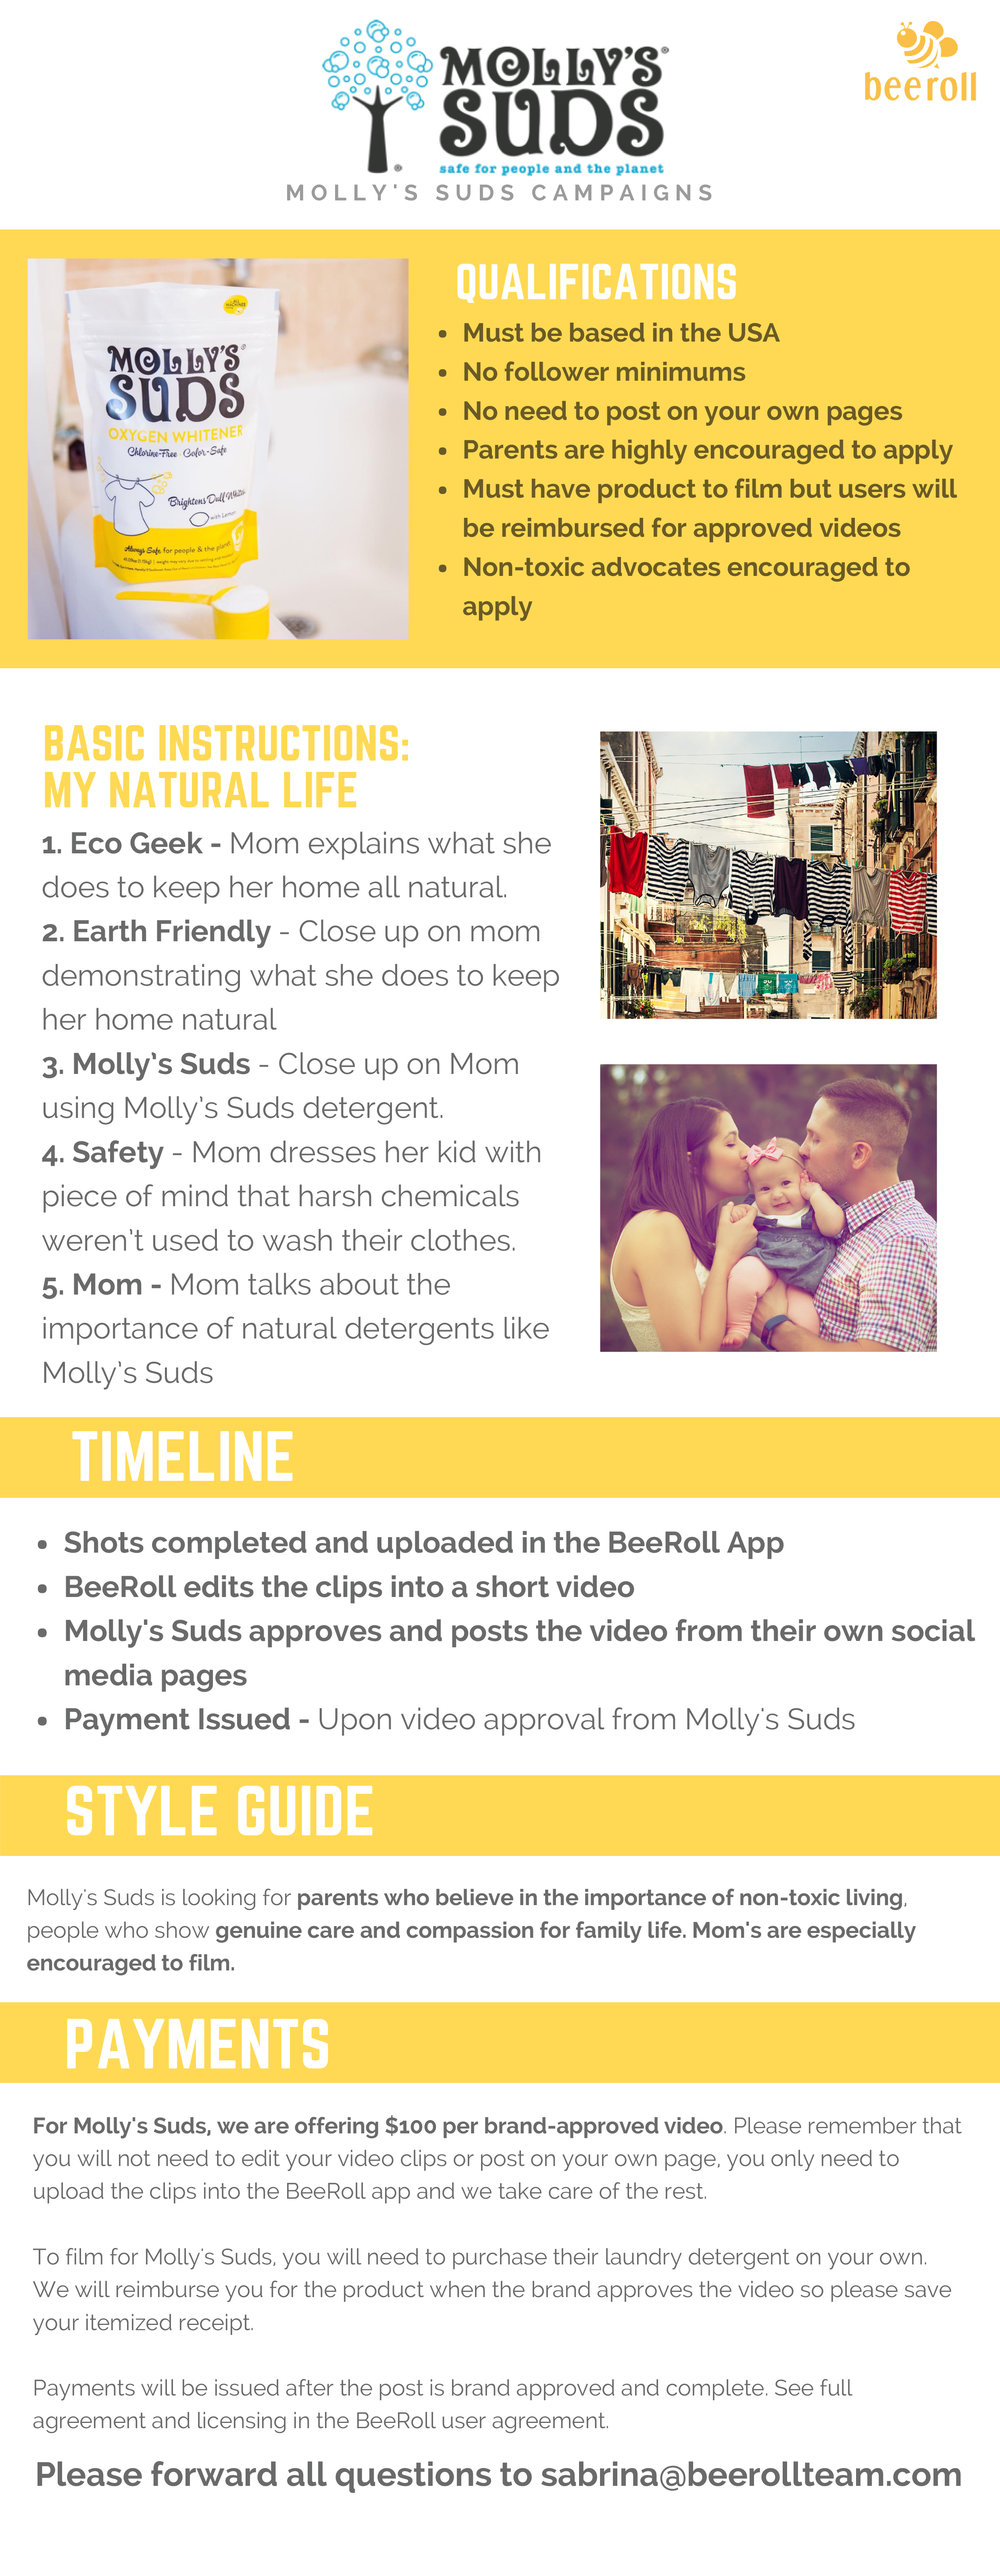 Molly's Suds Campaign One Pager (1)-1.jpg